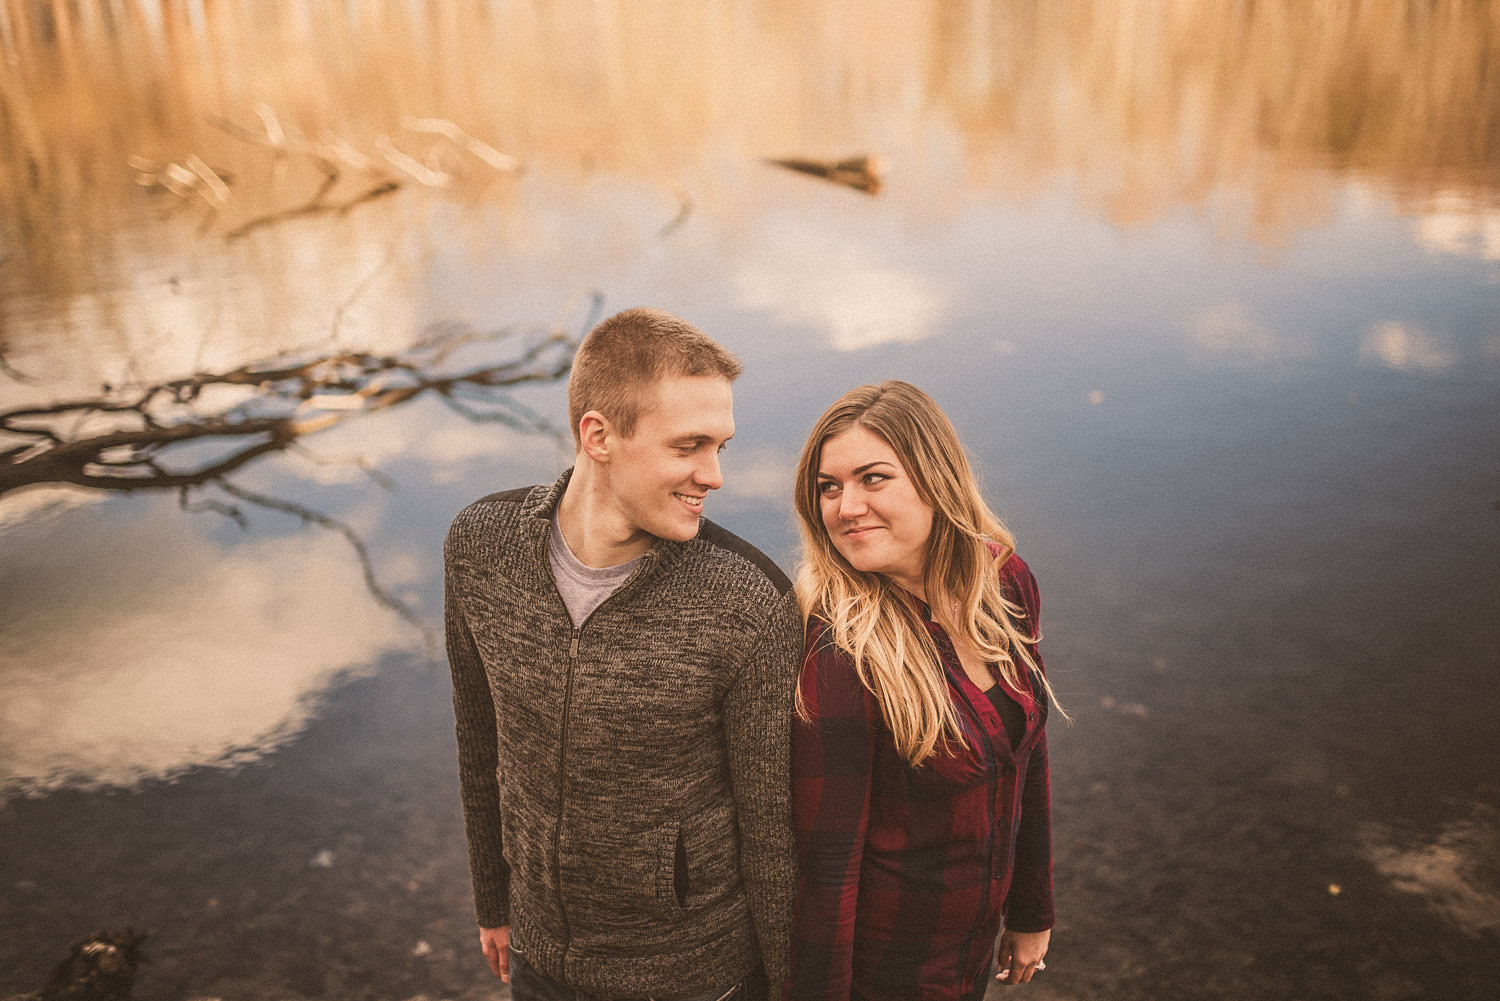 Johnson Park Downtown Grand Rapids Engagement  - 40.jpg